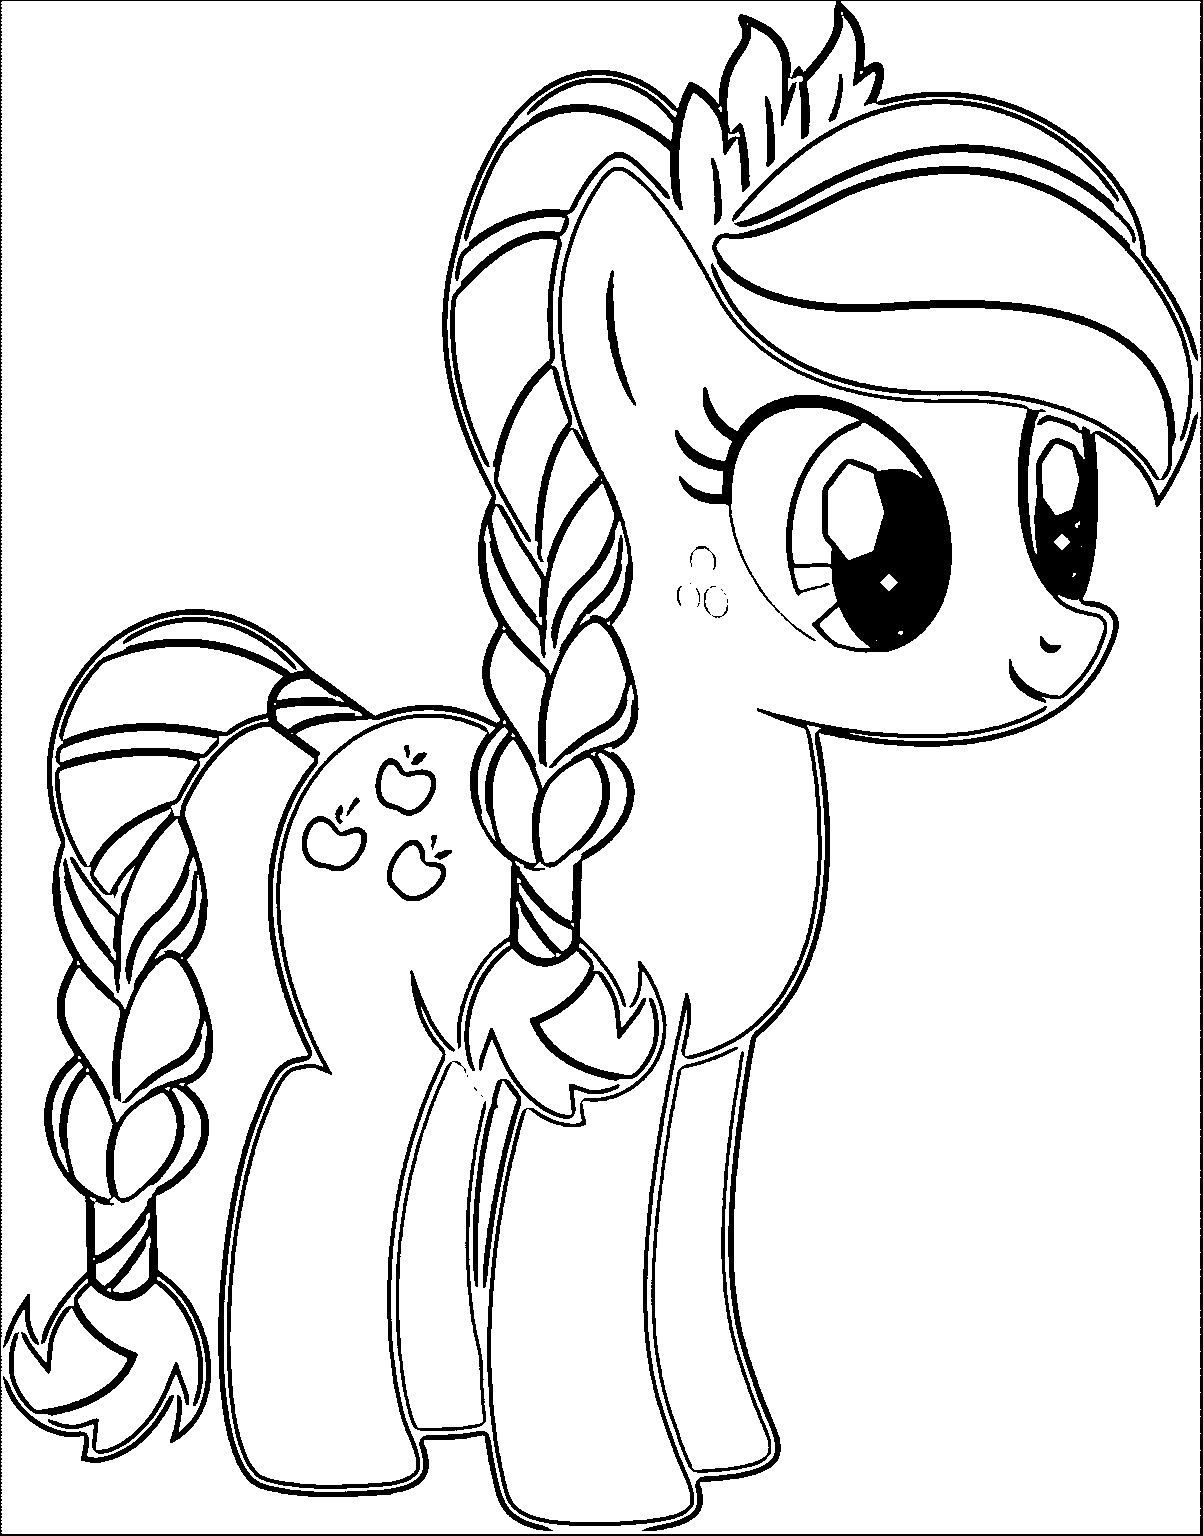 My Little Pony Scootaloo coloring page | Free Printable Coloring Pages | 1536x1203